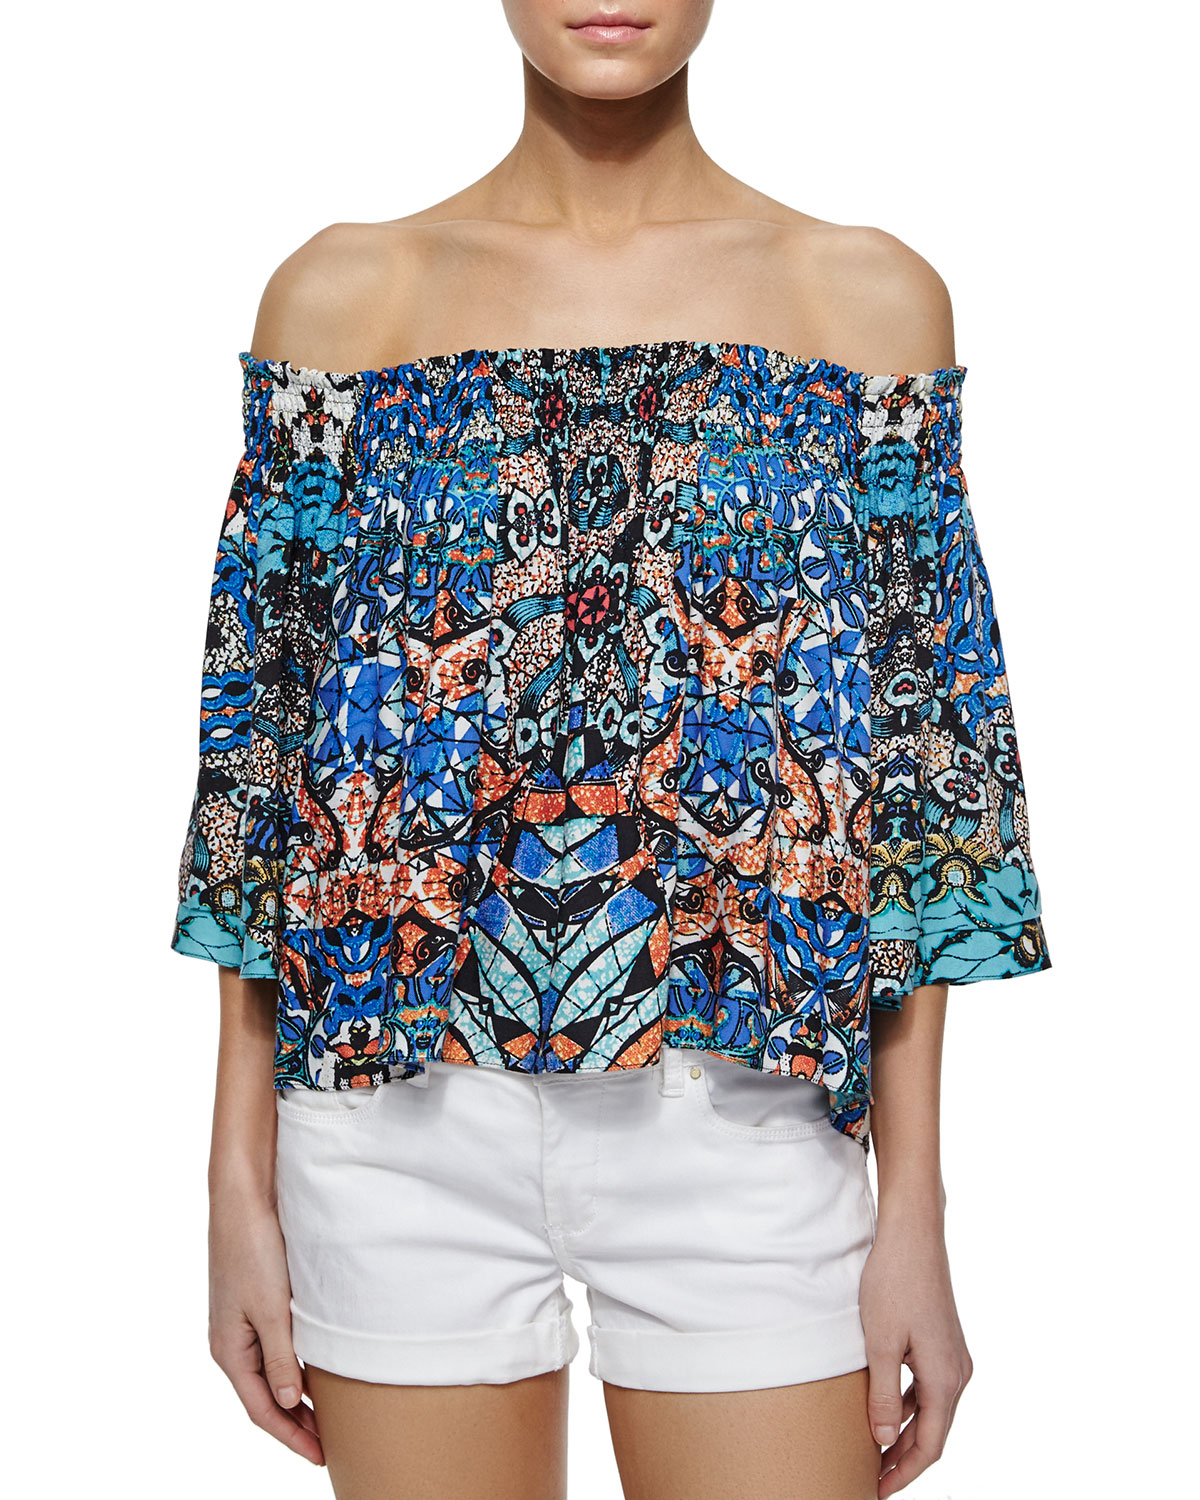 Off-the-Shoulder Smocked Top, Batik Print